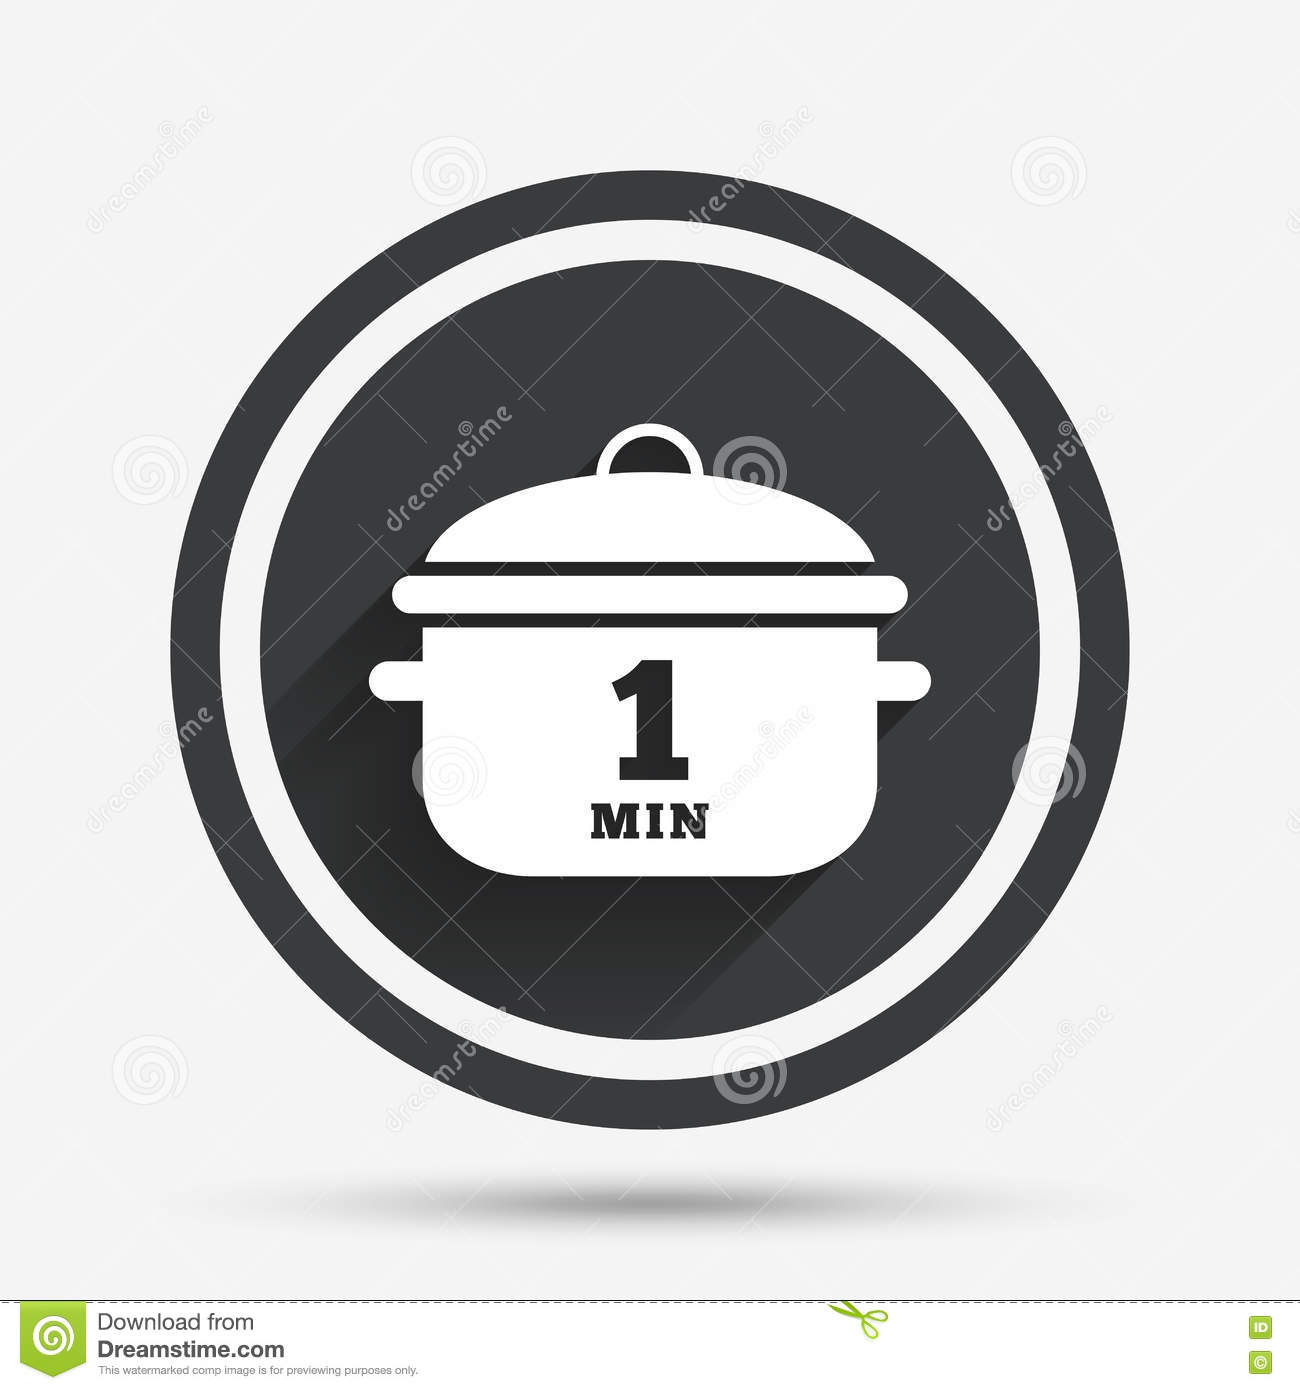 Boil 1 minute. Cooking pan sign icon. Stew food.